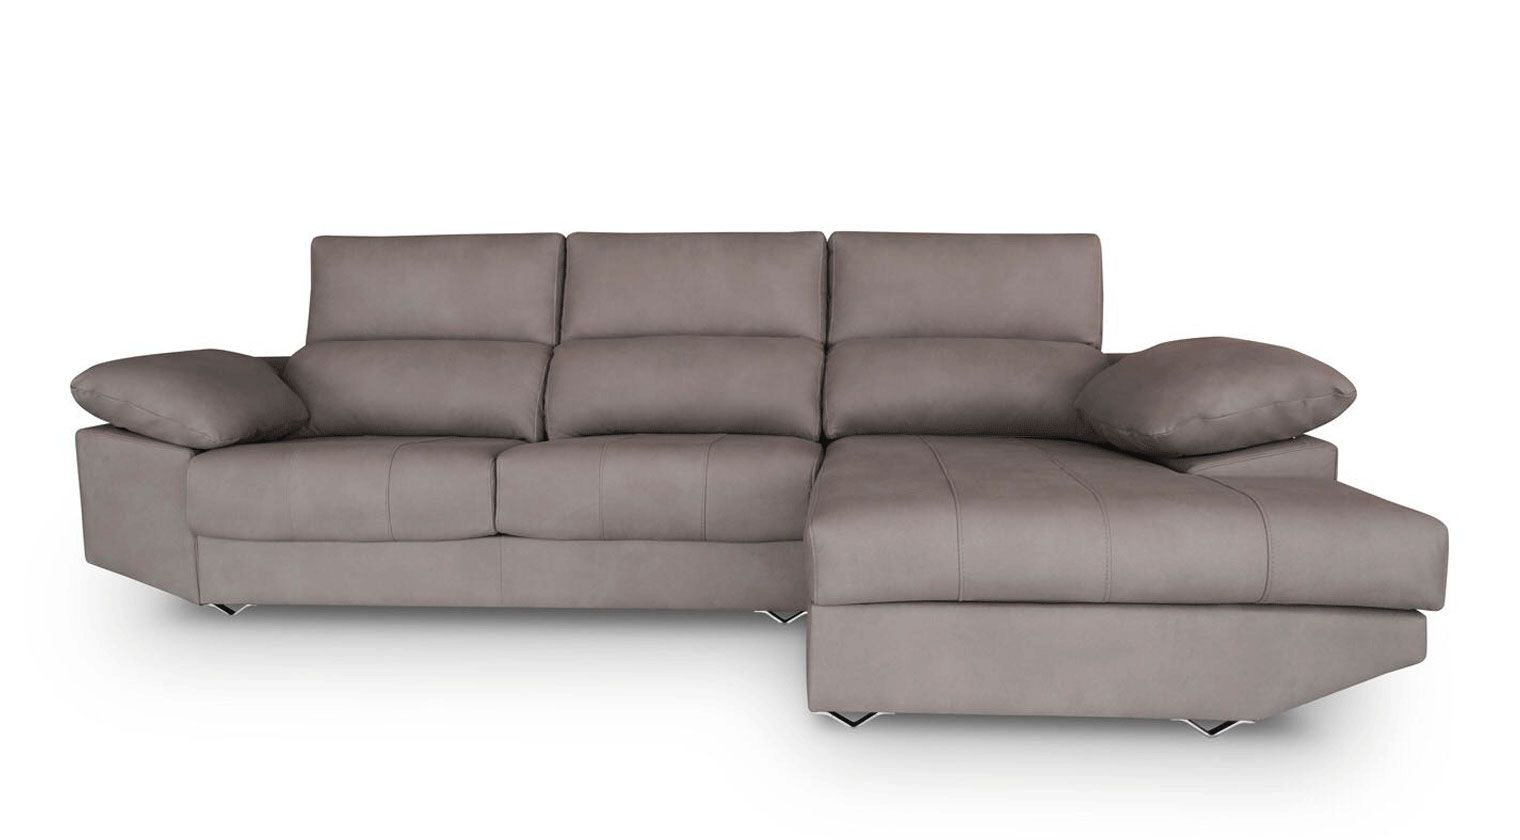 Comprar sof tela invictus chaise longue 4 plazas for Sofas baratos alicante